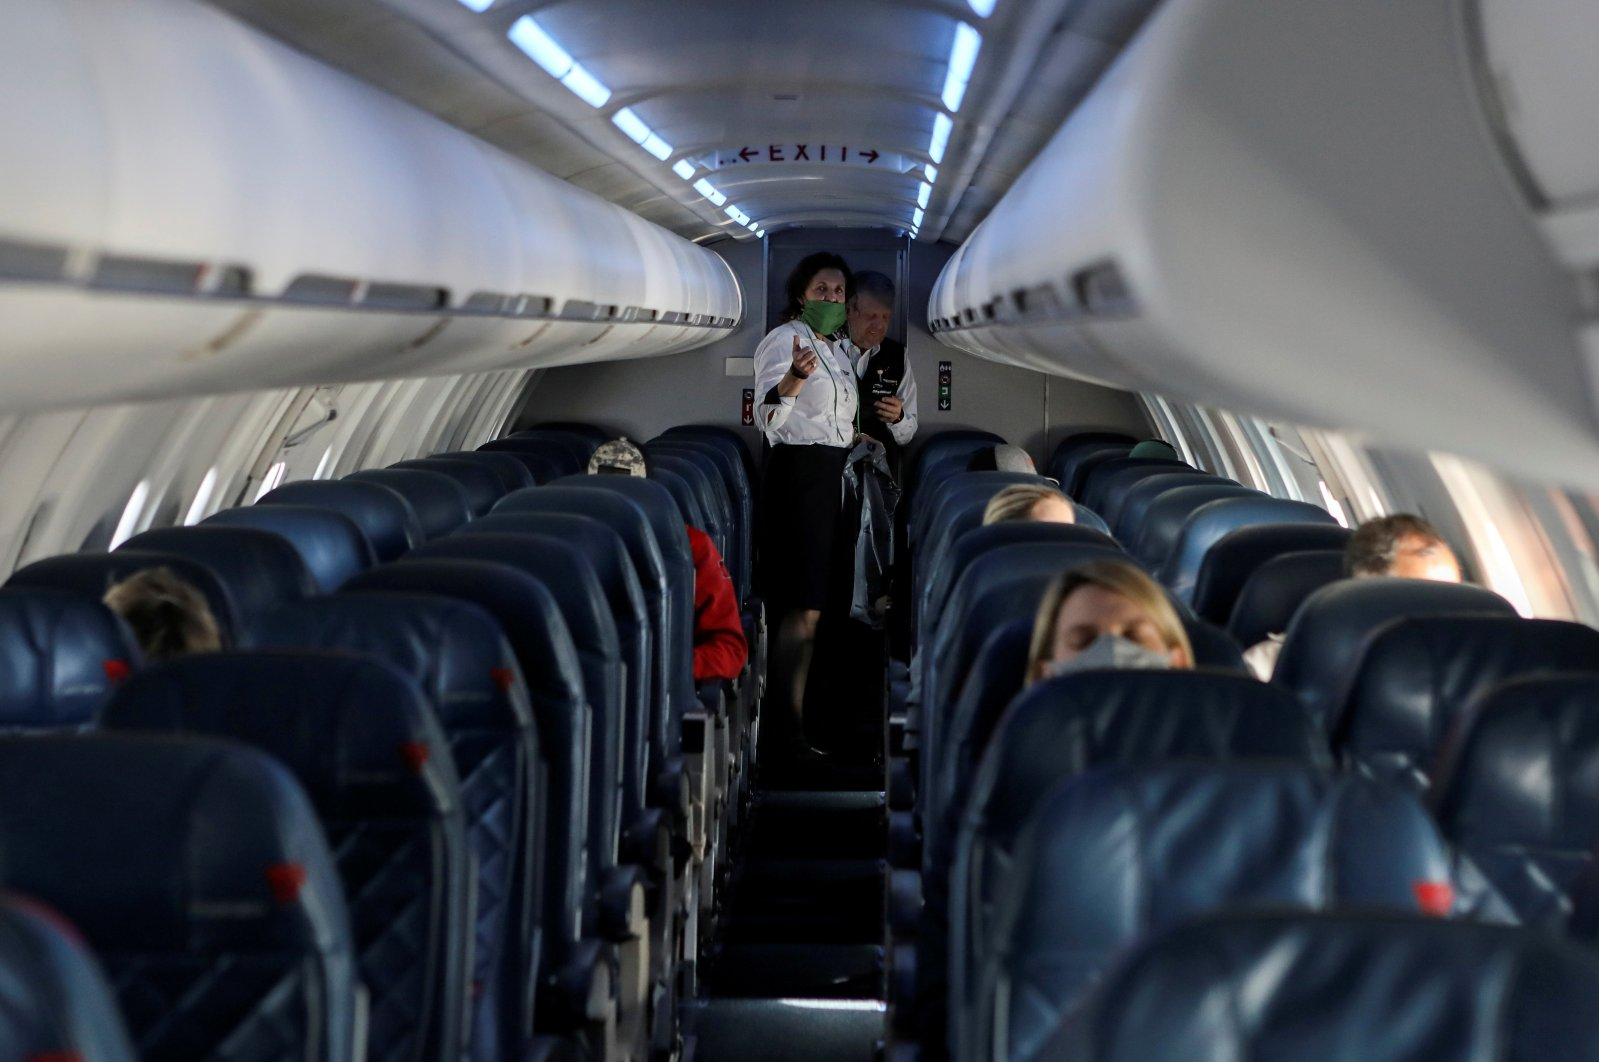 Flight attendants talk in a nearly empty cabin on a Delta Airlines flight operated by SkyWest Airlines as travel has cutback, amid concerns of the coronavirus during a flight departing from Salt Lake City, Utah, U.S., April 11, 2020. (REUTERS Photo)